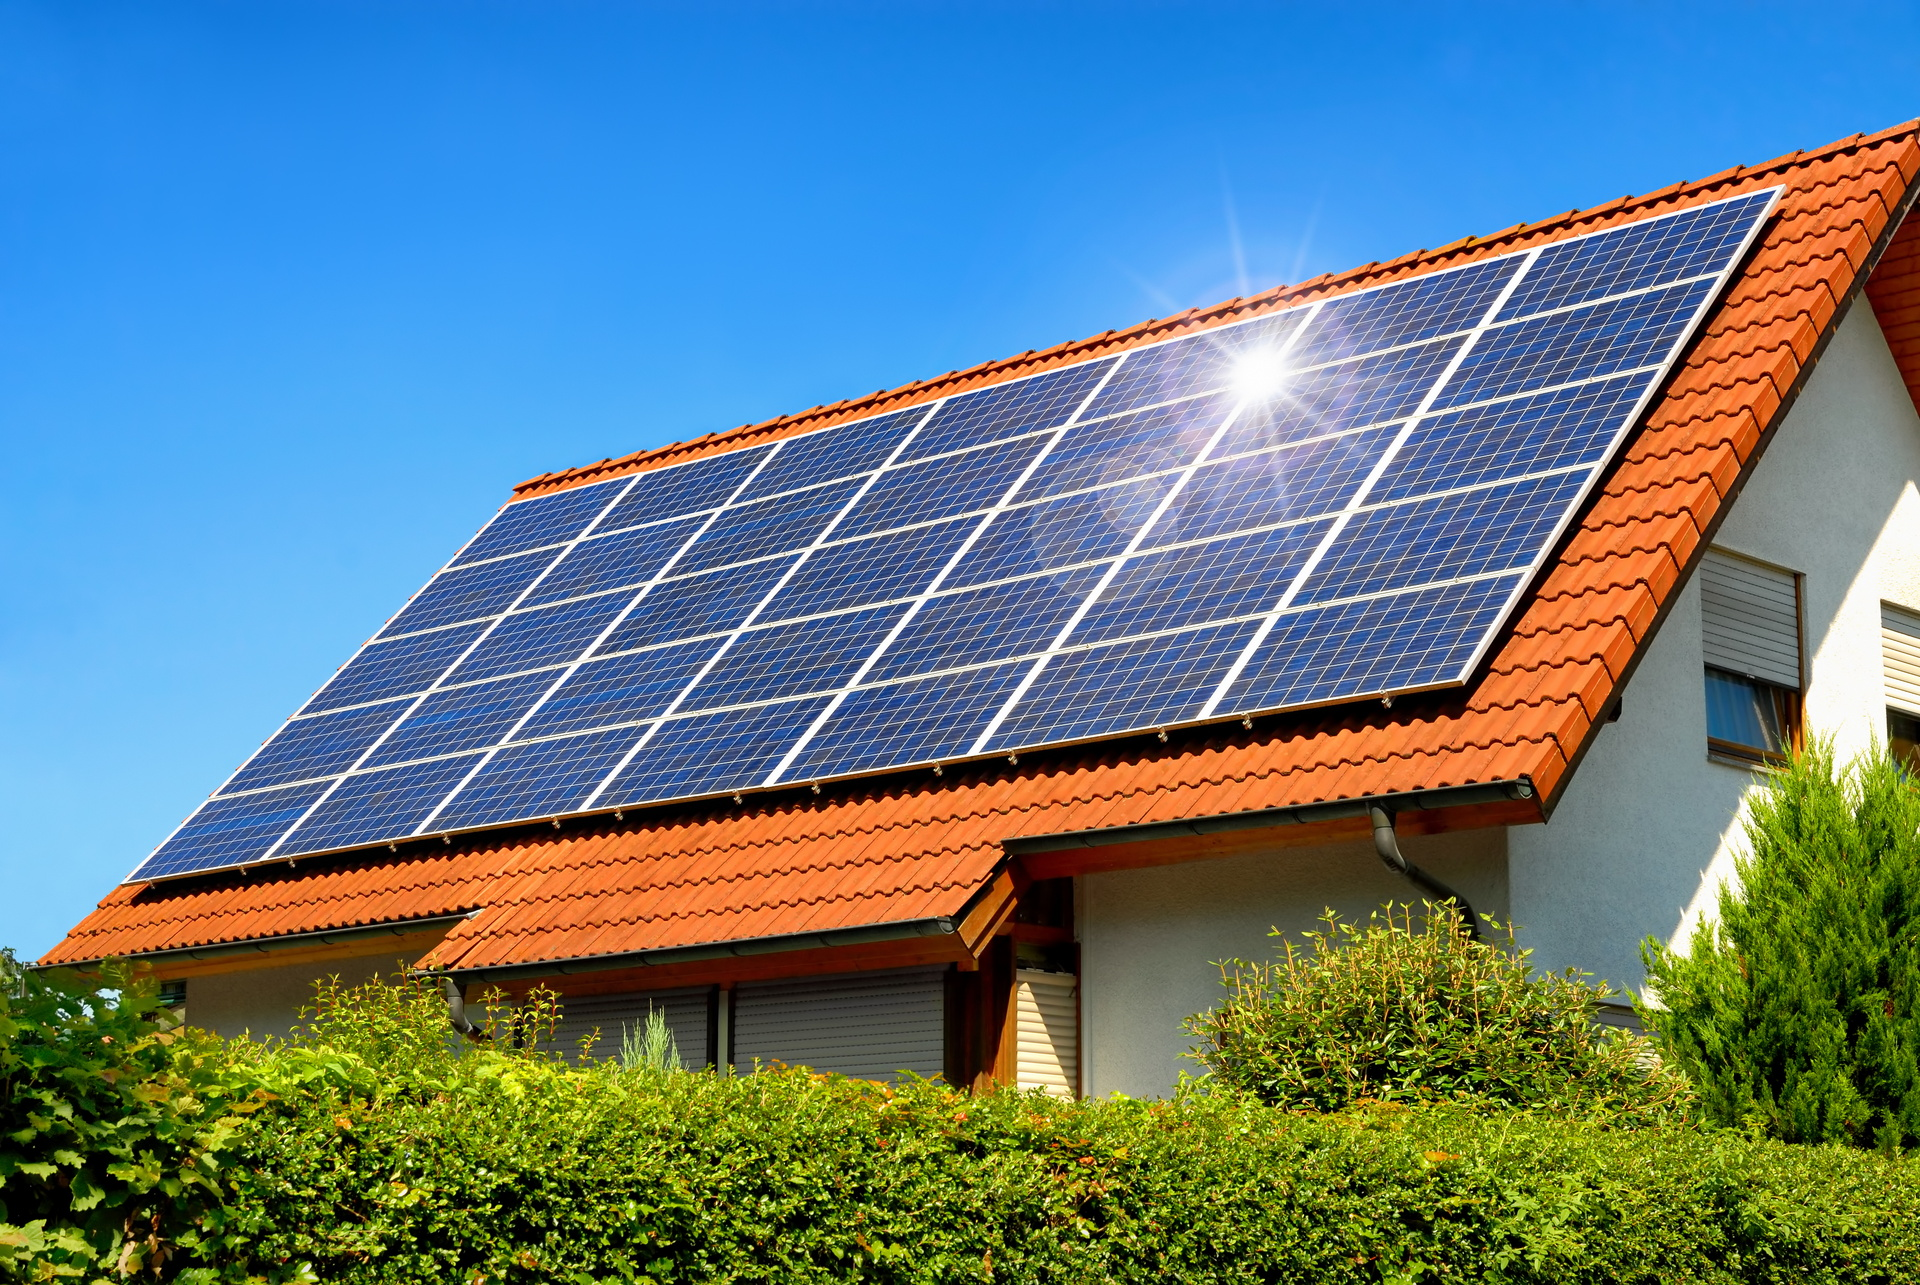 3 Factors To Consider When Installing Solar Panels Sierra Pacific Whole House Fan Attic Cover Air Seal Youtube Home Comfort Inc